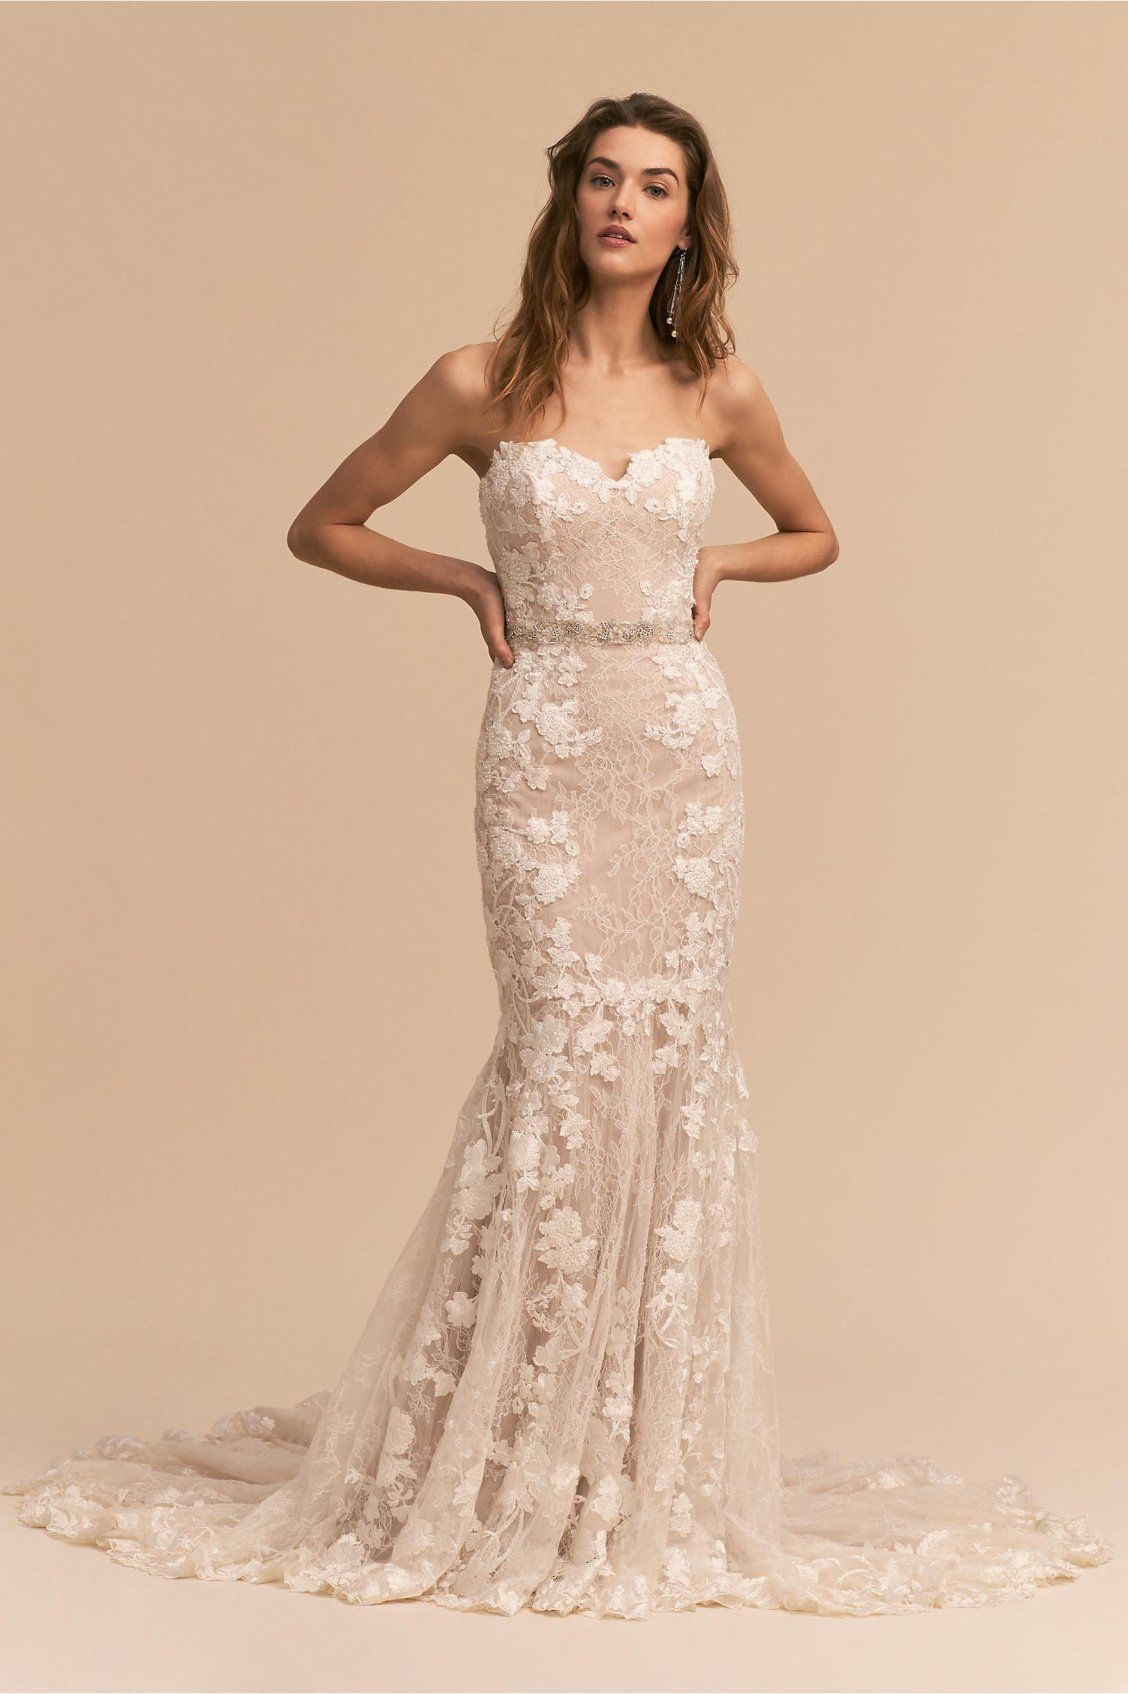 bdcf235567a8 Lombardy Gown from BHLDN | The Romantic Bride | Bhldn wedding dress ...